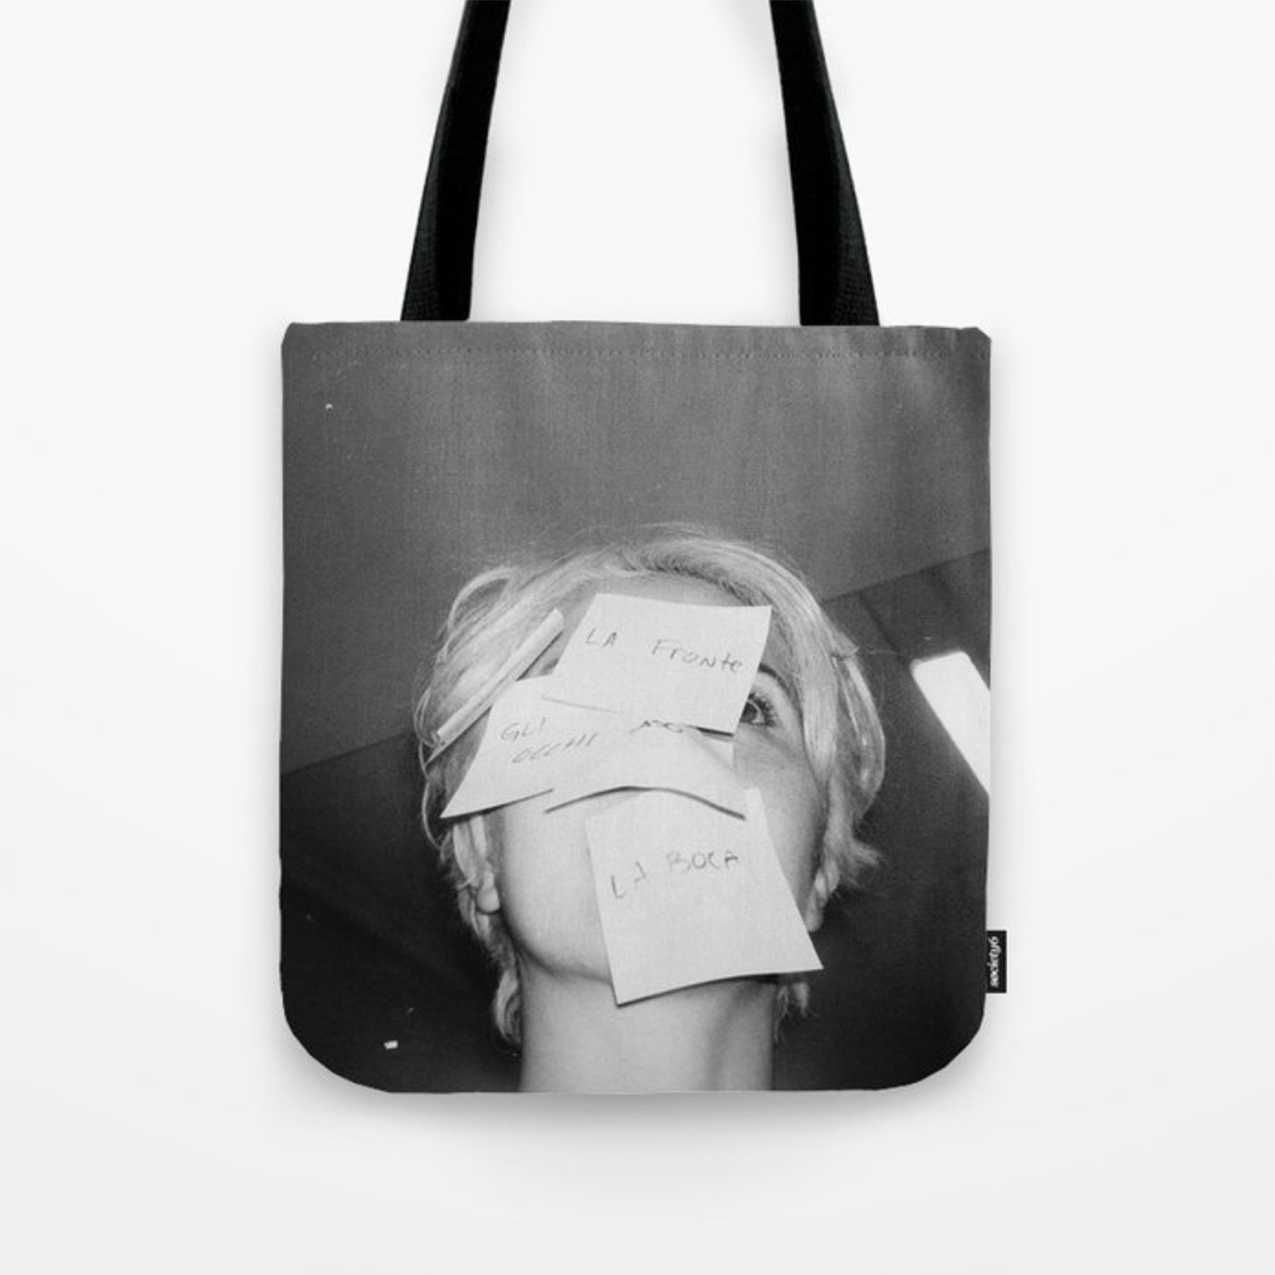 TOTE BAGS (small)